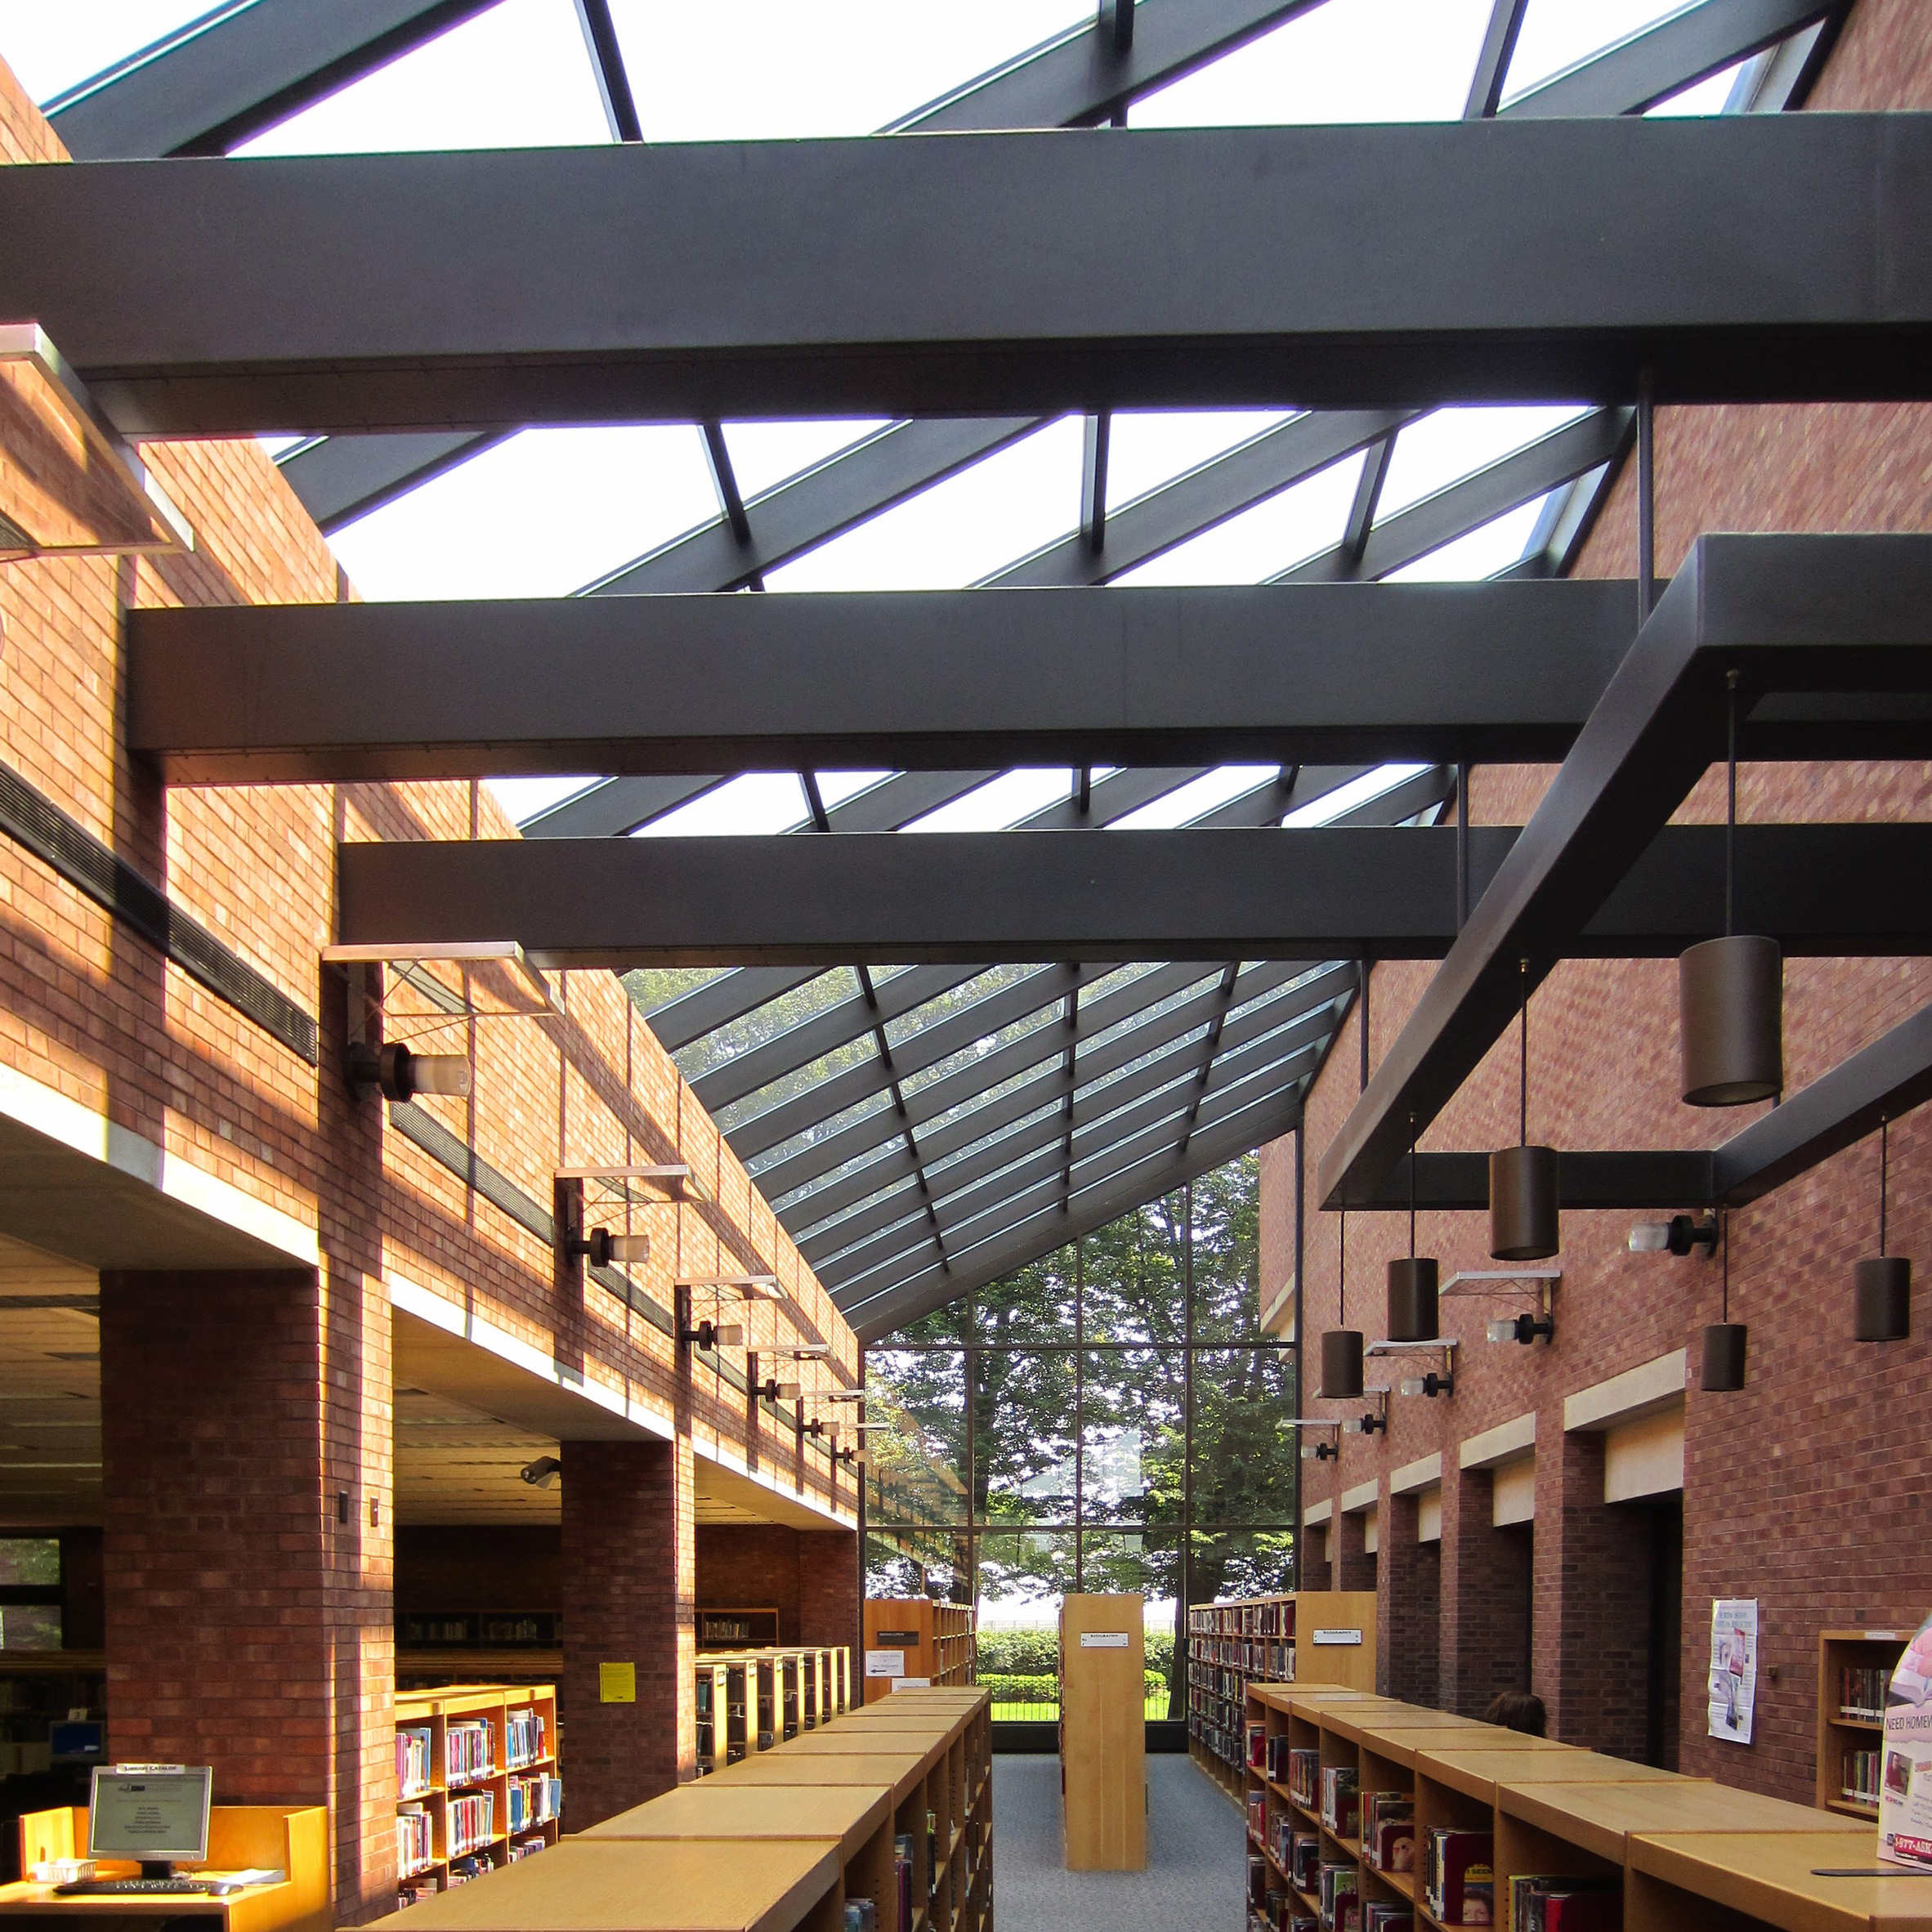 Cleo Rogers Memorial Library by IM Pei, 1969